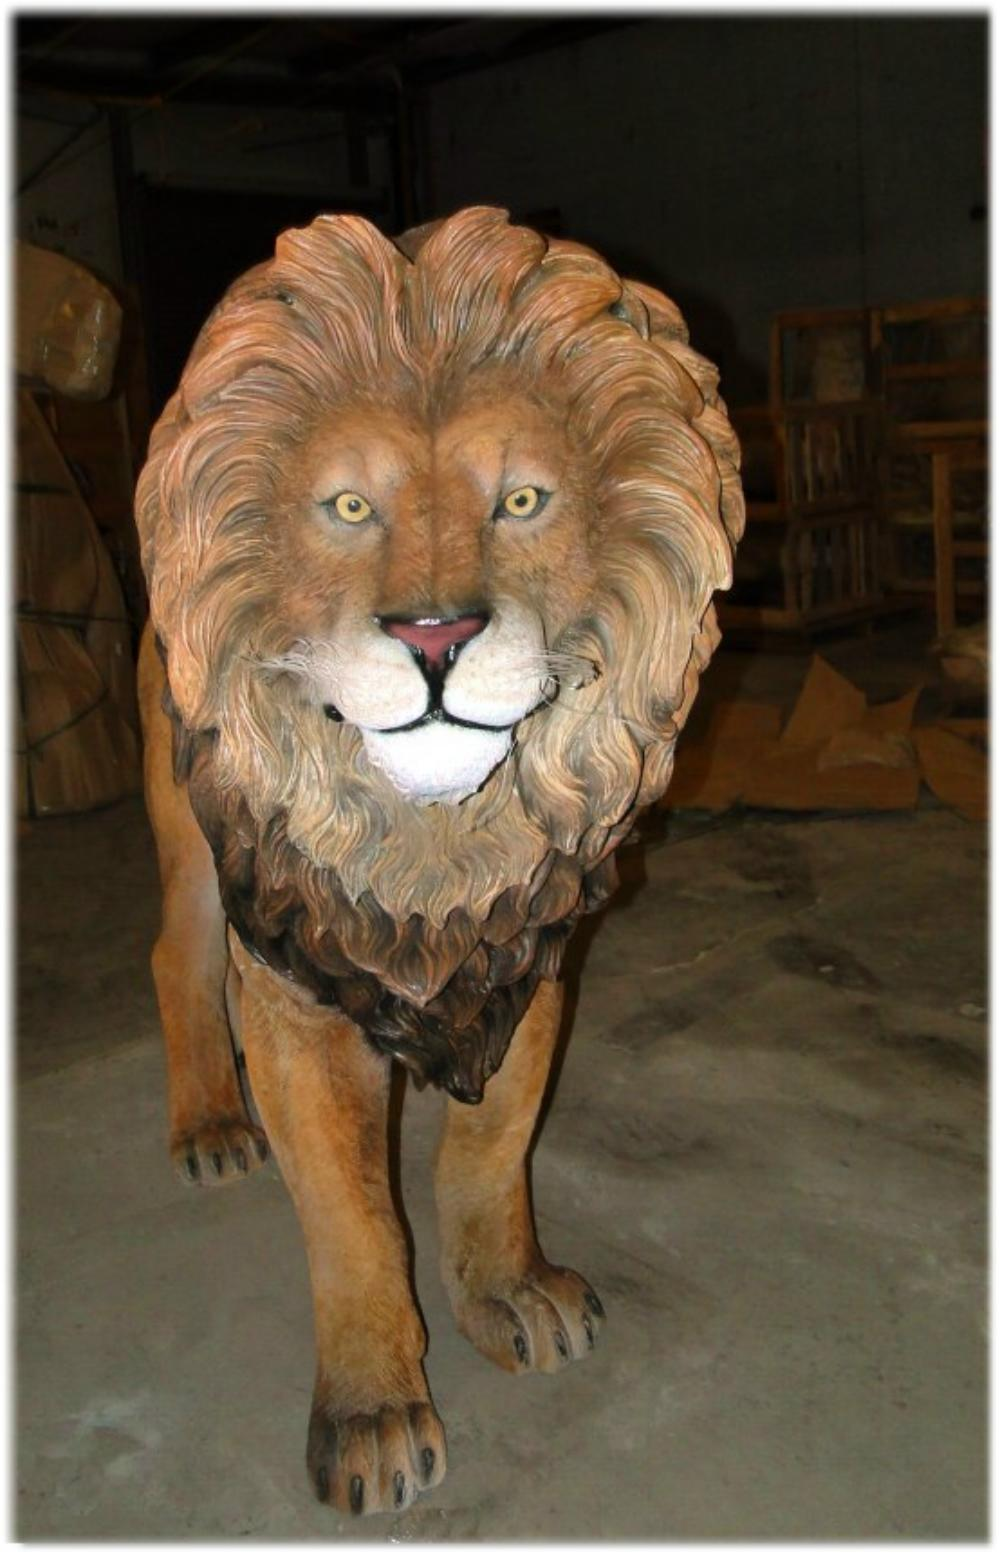 Life Size LION KING SCULPTURE Statue Full Size Zoo Animal